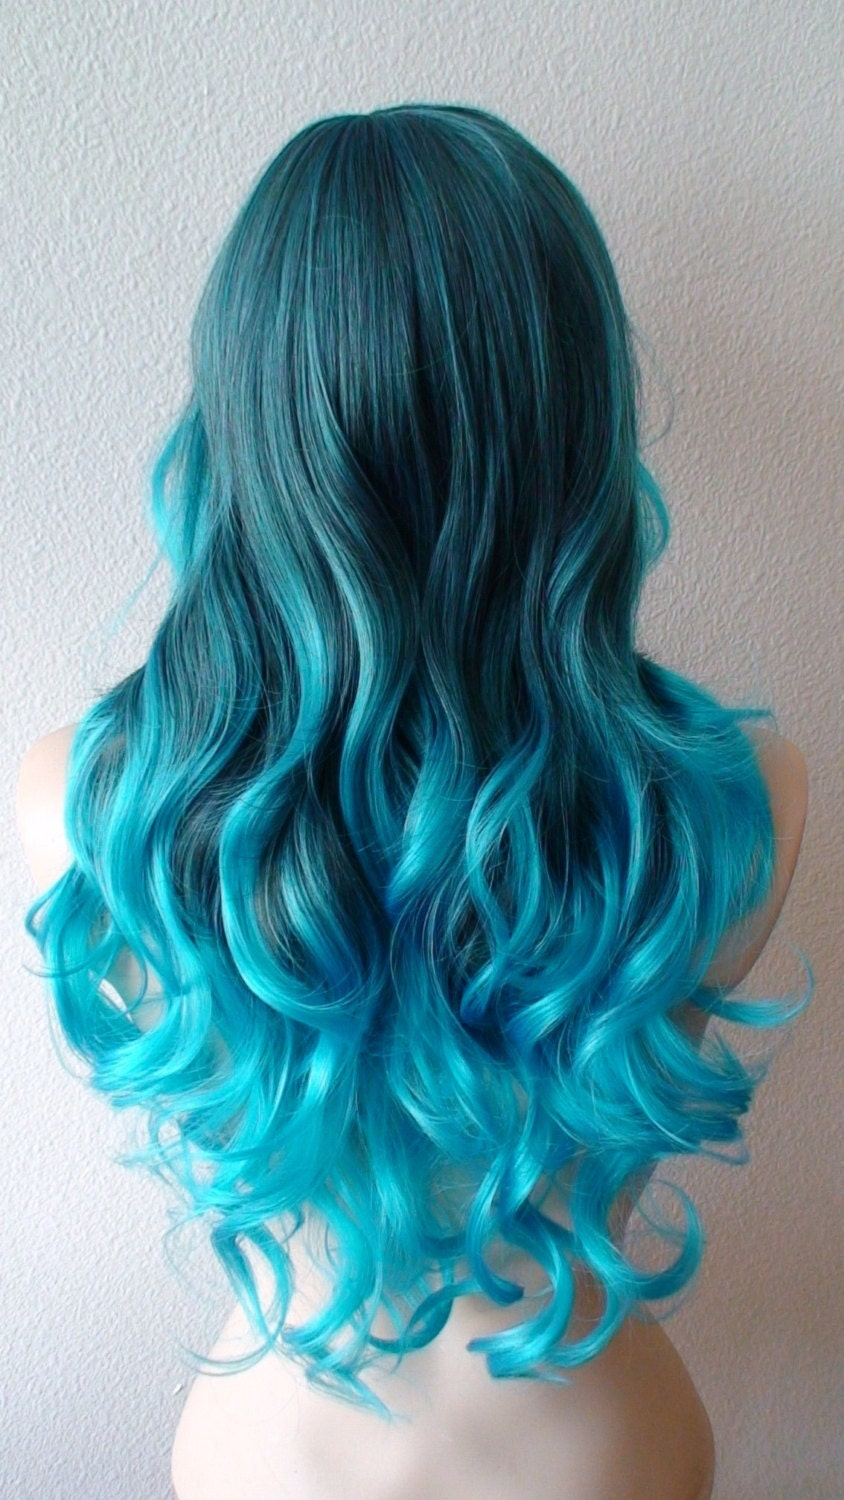 long curly natural hair color newhairstylesformen2014com